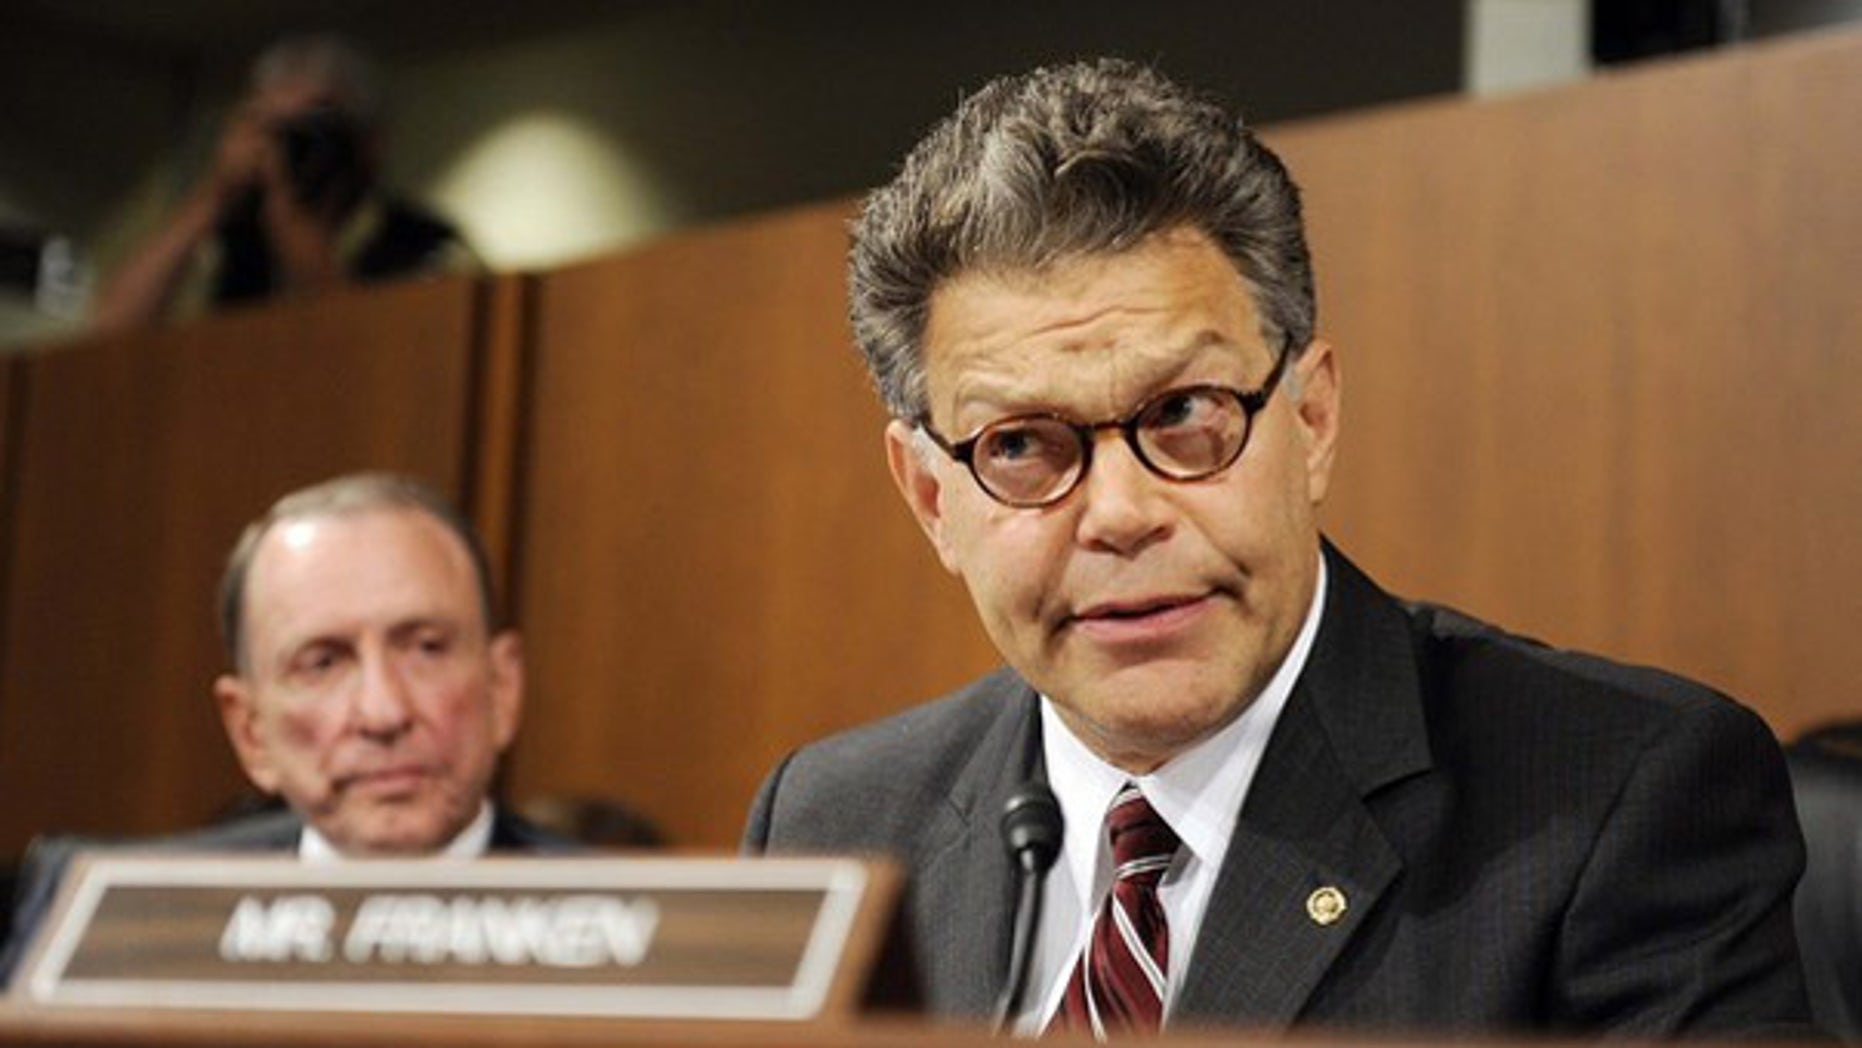 Sen. Al Franken questions Supreme Court nominee Judge Sonia Sotomayor during the third day of her U.S. Senate Judiciary Committee confirmation hearings on Capitol Hill in Washington July 15, 2009.(Reuters)